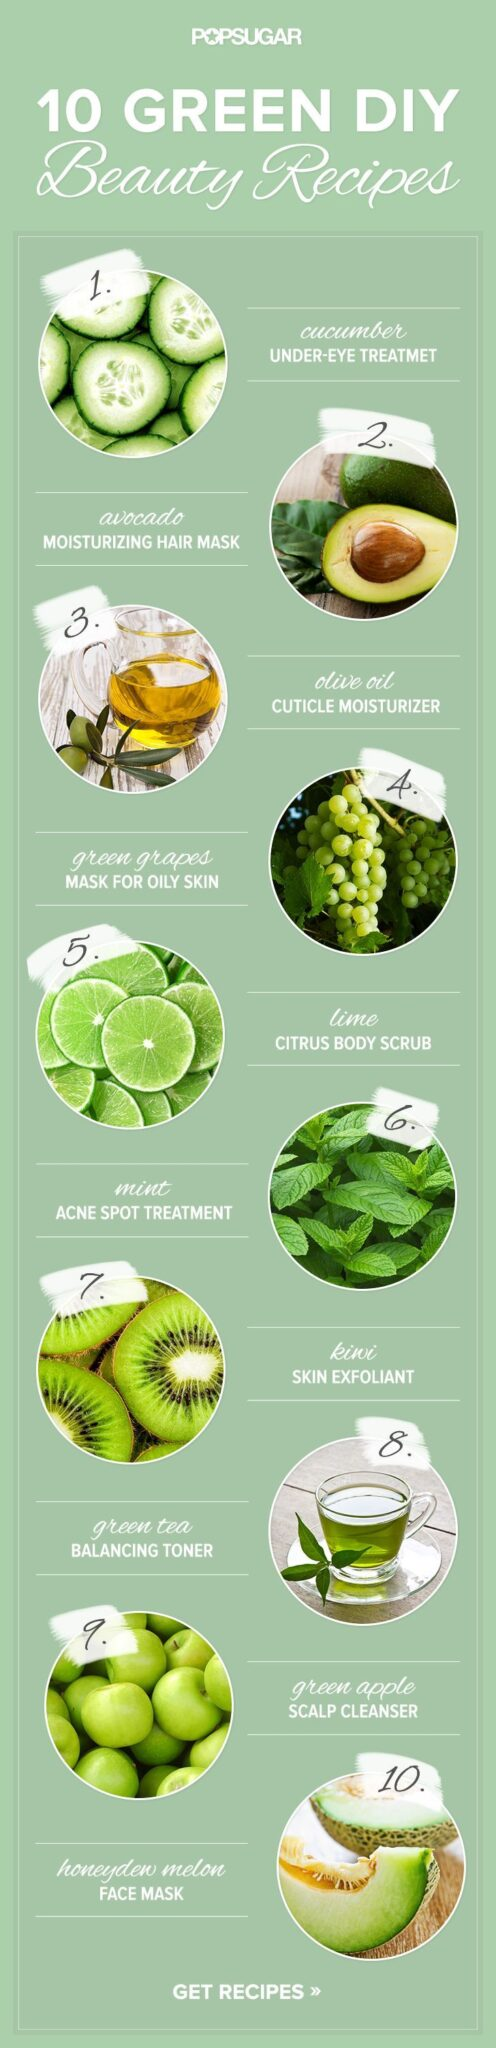 10 Beauty DIY Recipes That Are Green in Every Way ~ https://healthpositiveinfo.com/8-beauty-diy-tips-and-hacks.html